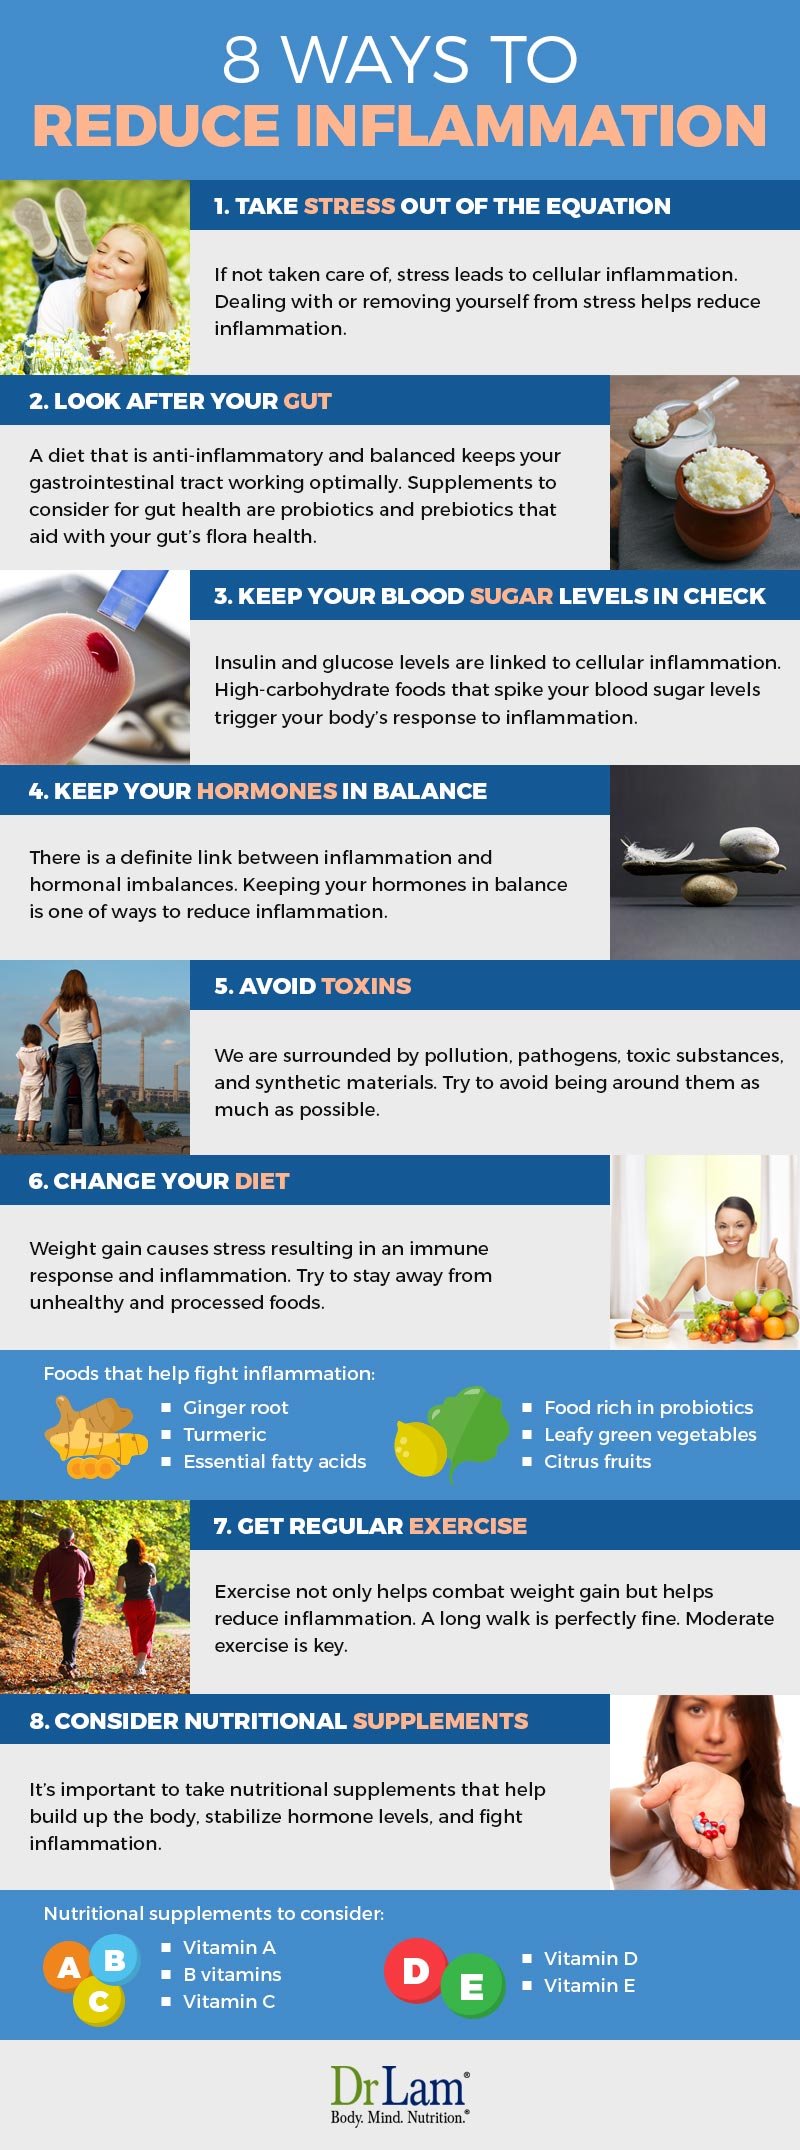 Check out this easy to understand infographic about the 8 ways to reduce inflammation